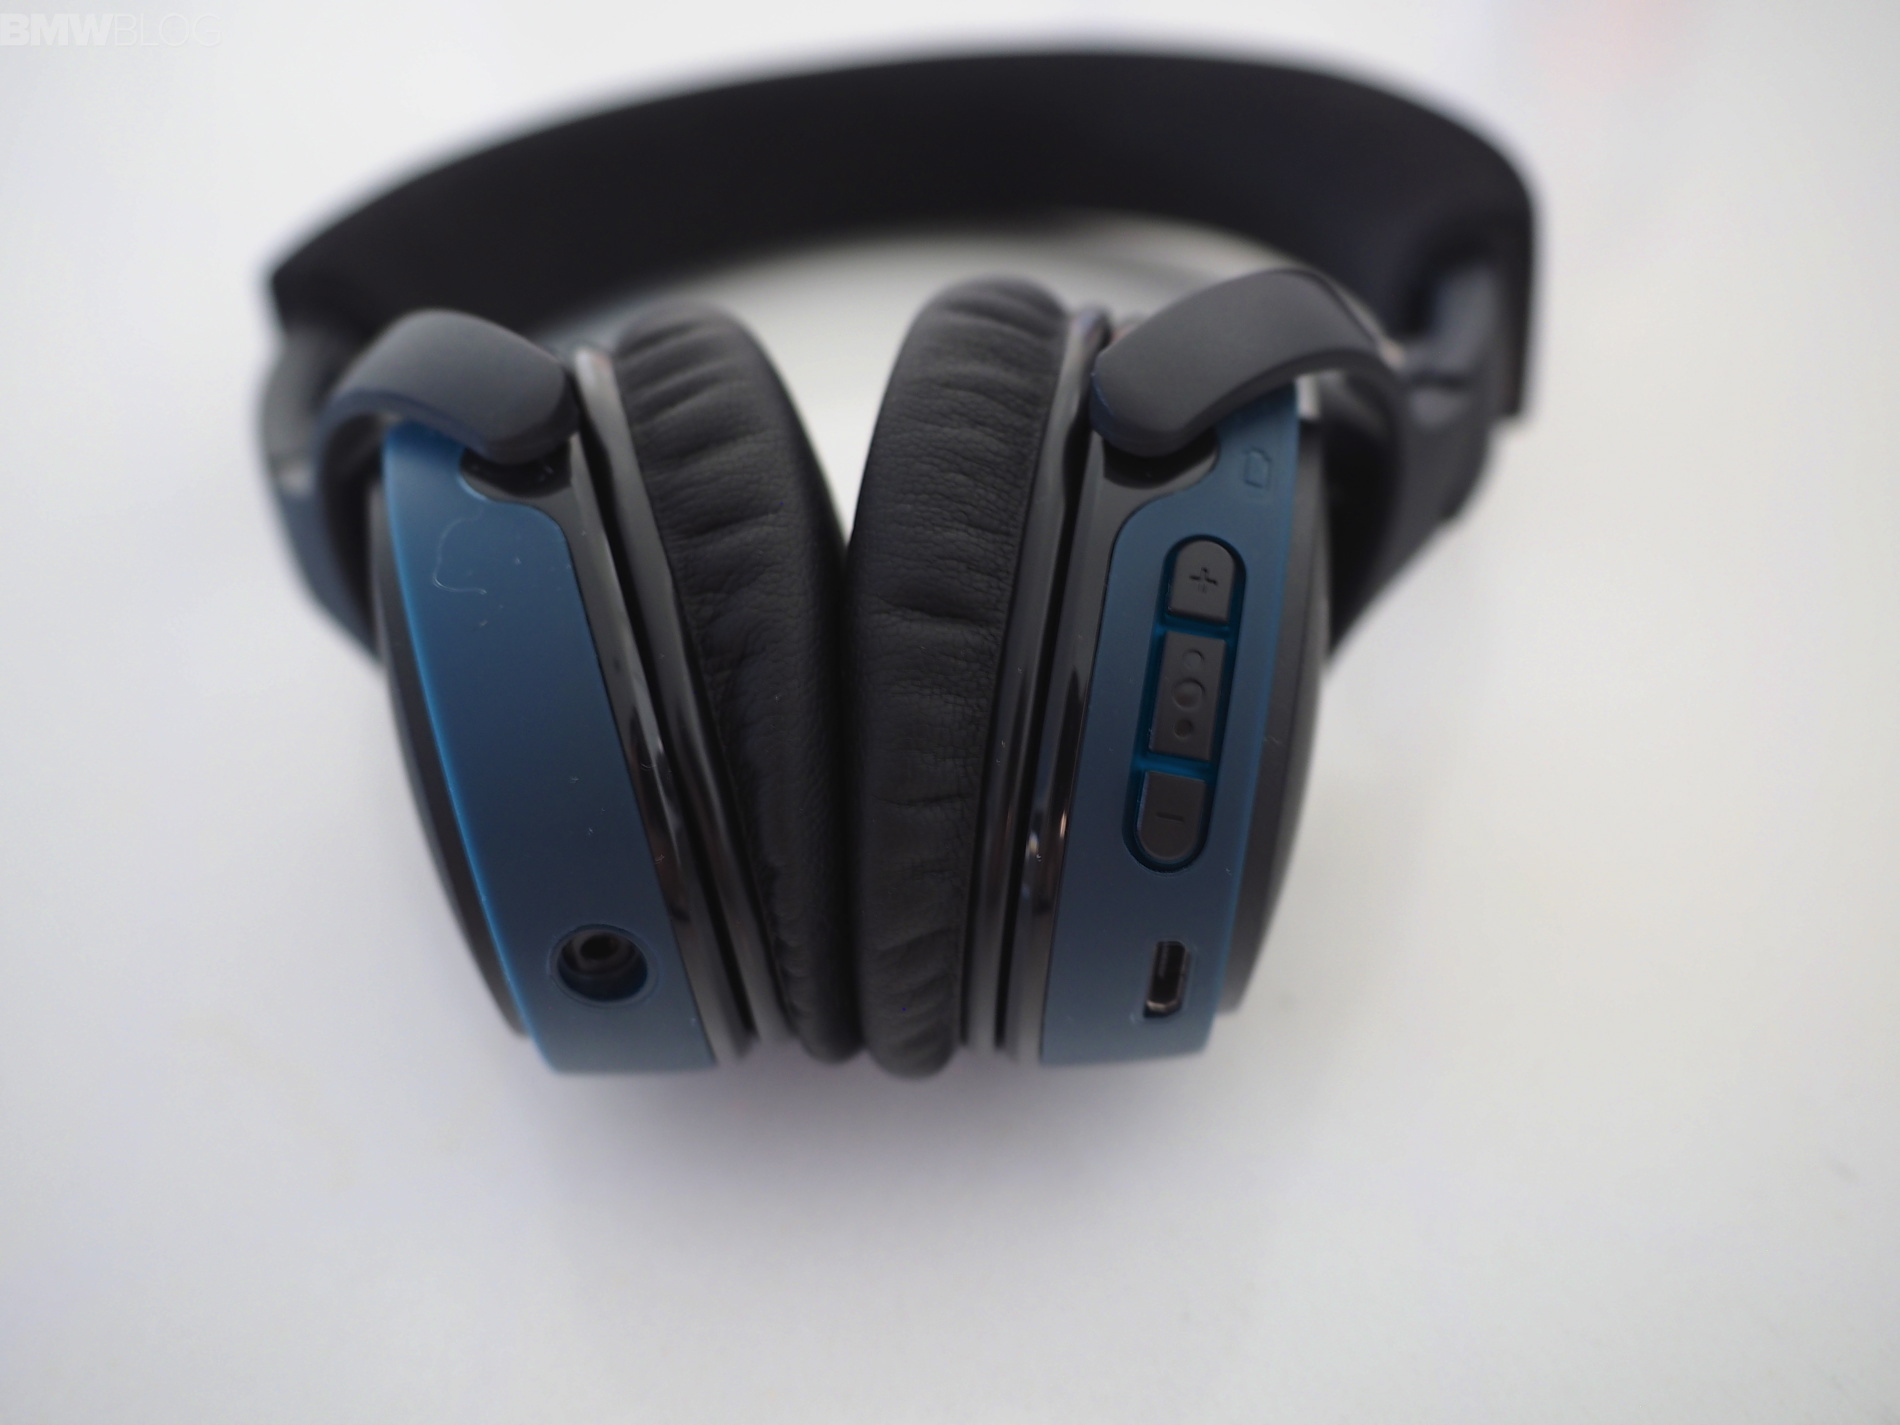 Best Bluetooth Headphones to use in your BMW